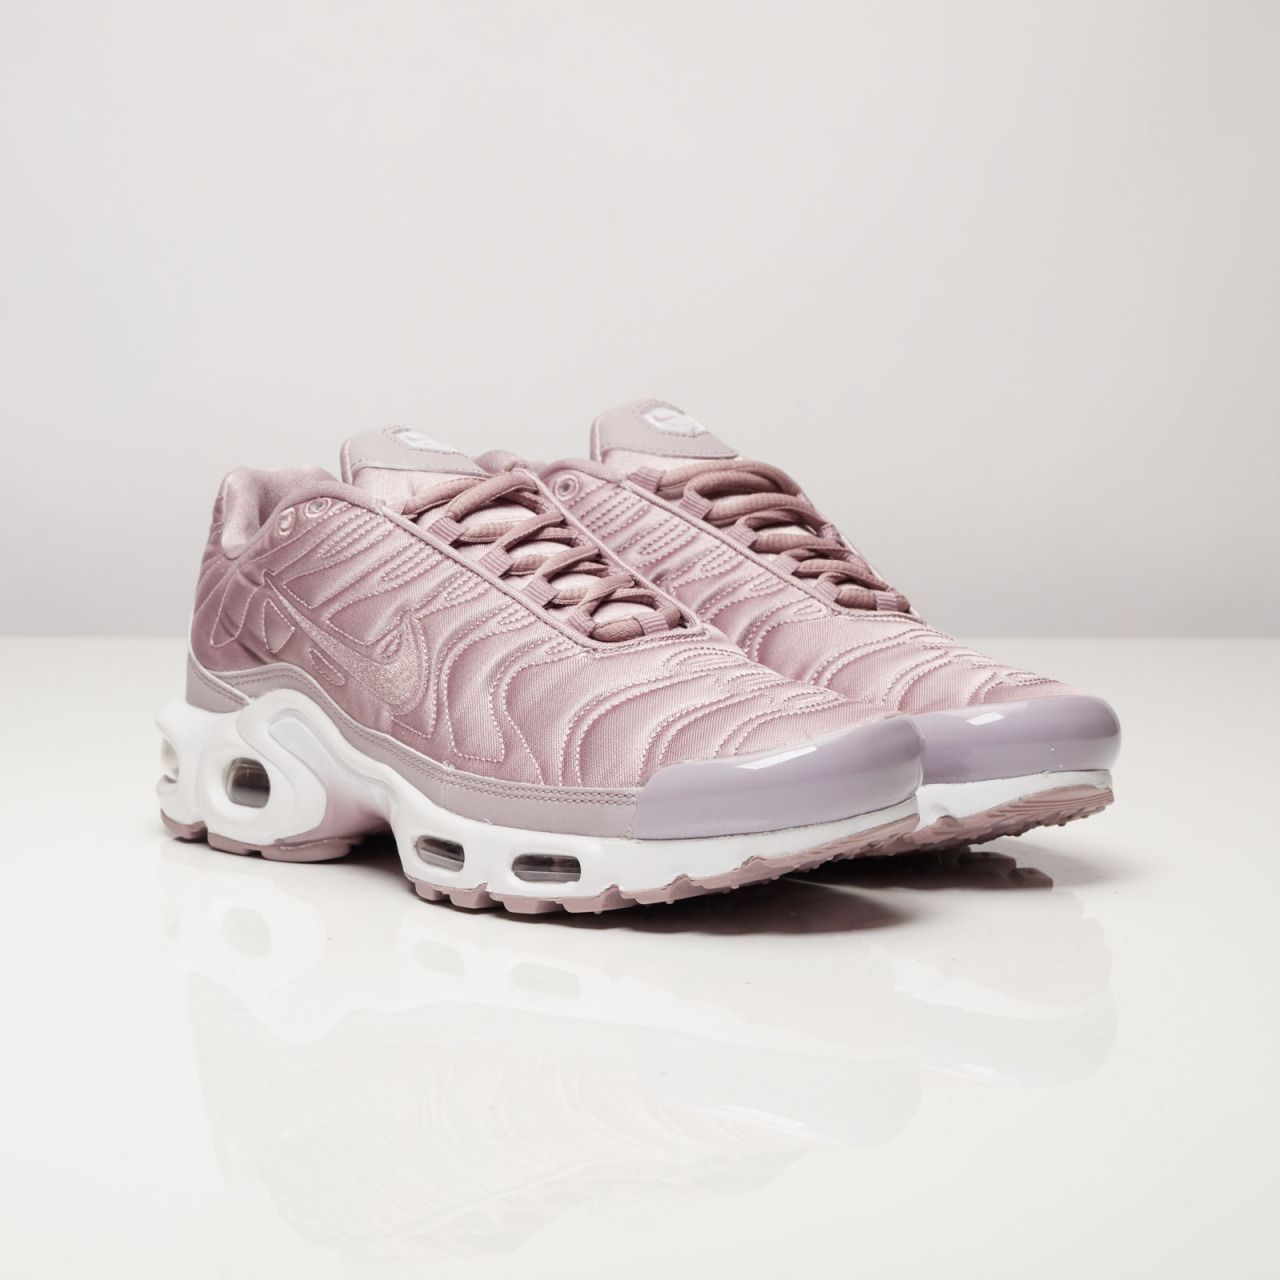 b5940e7b4c soft pink satin nike air max 99 | fashion - sneakers in 2019 | Nike ...